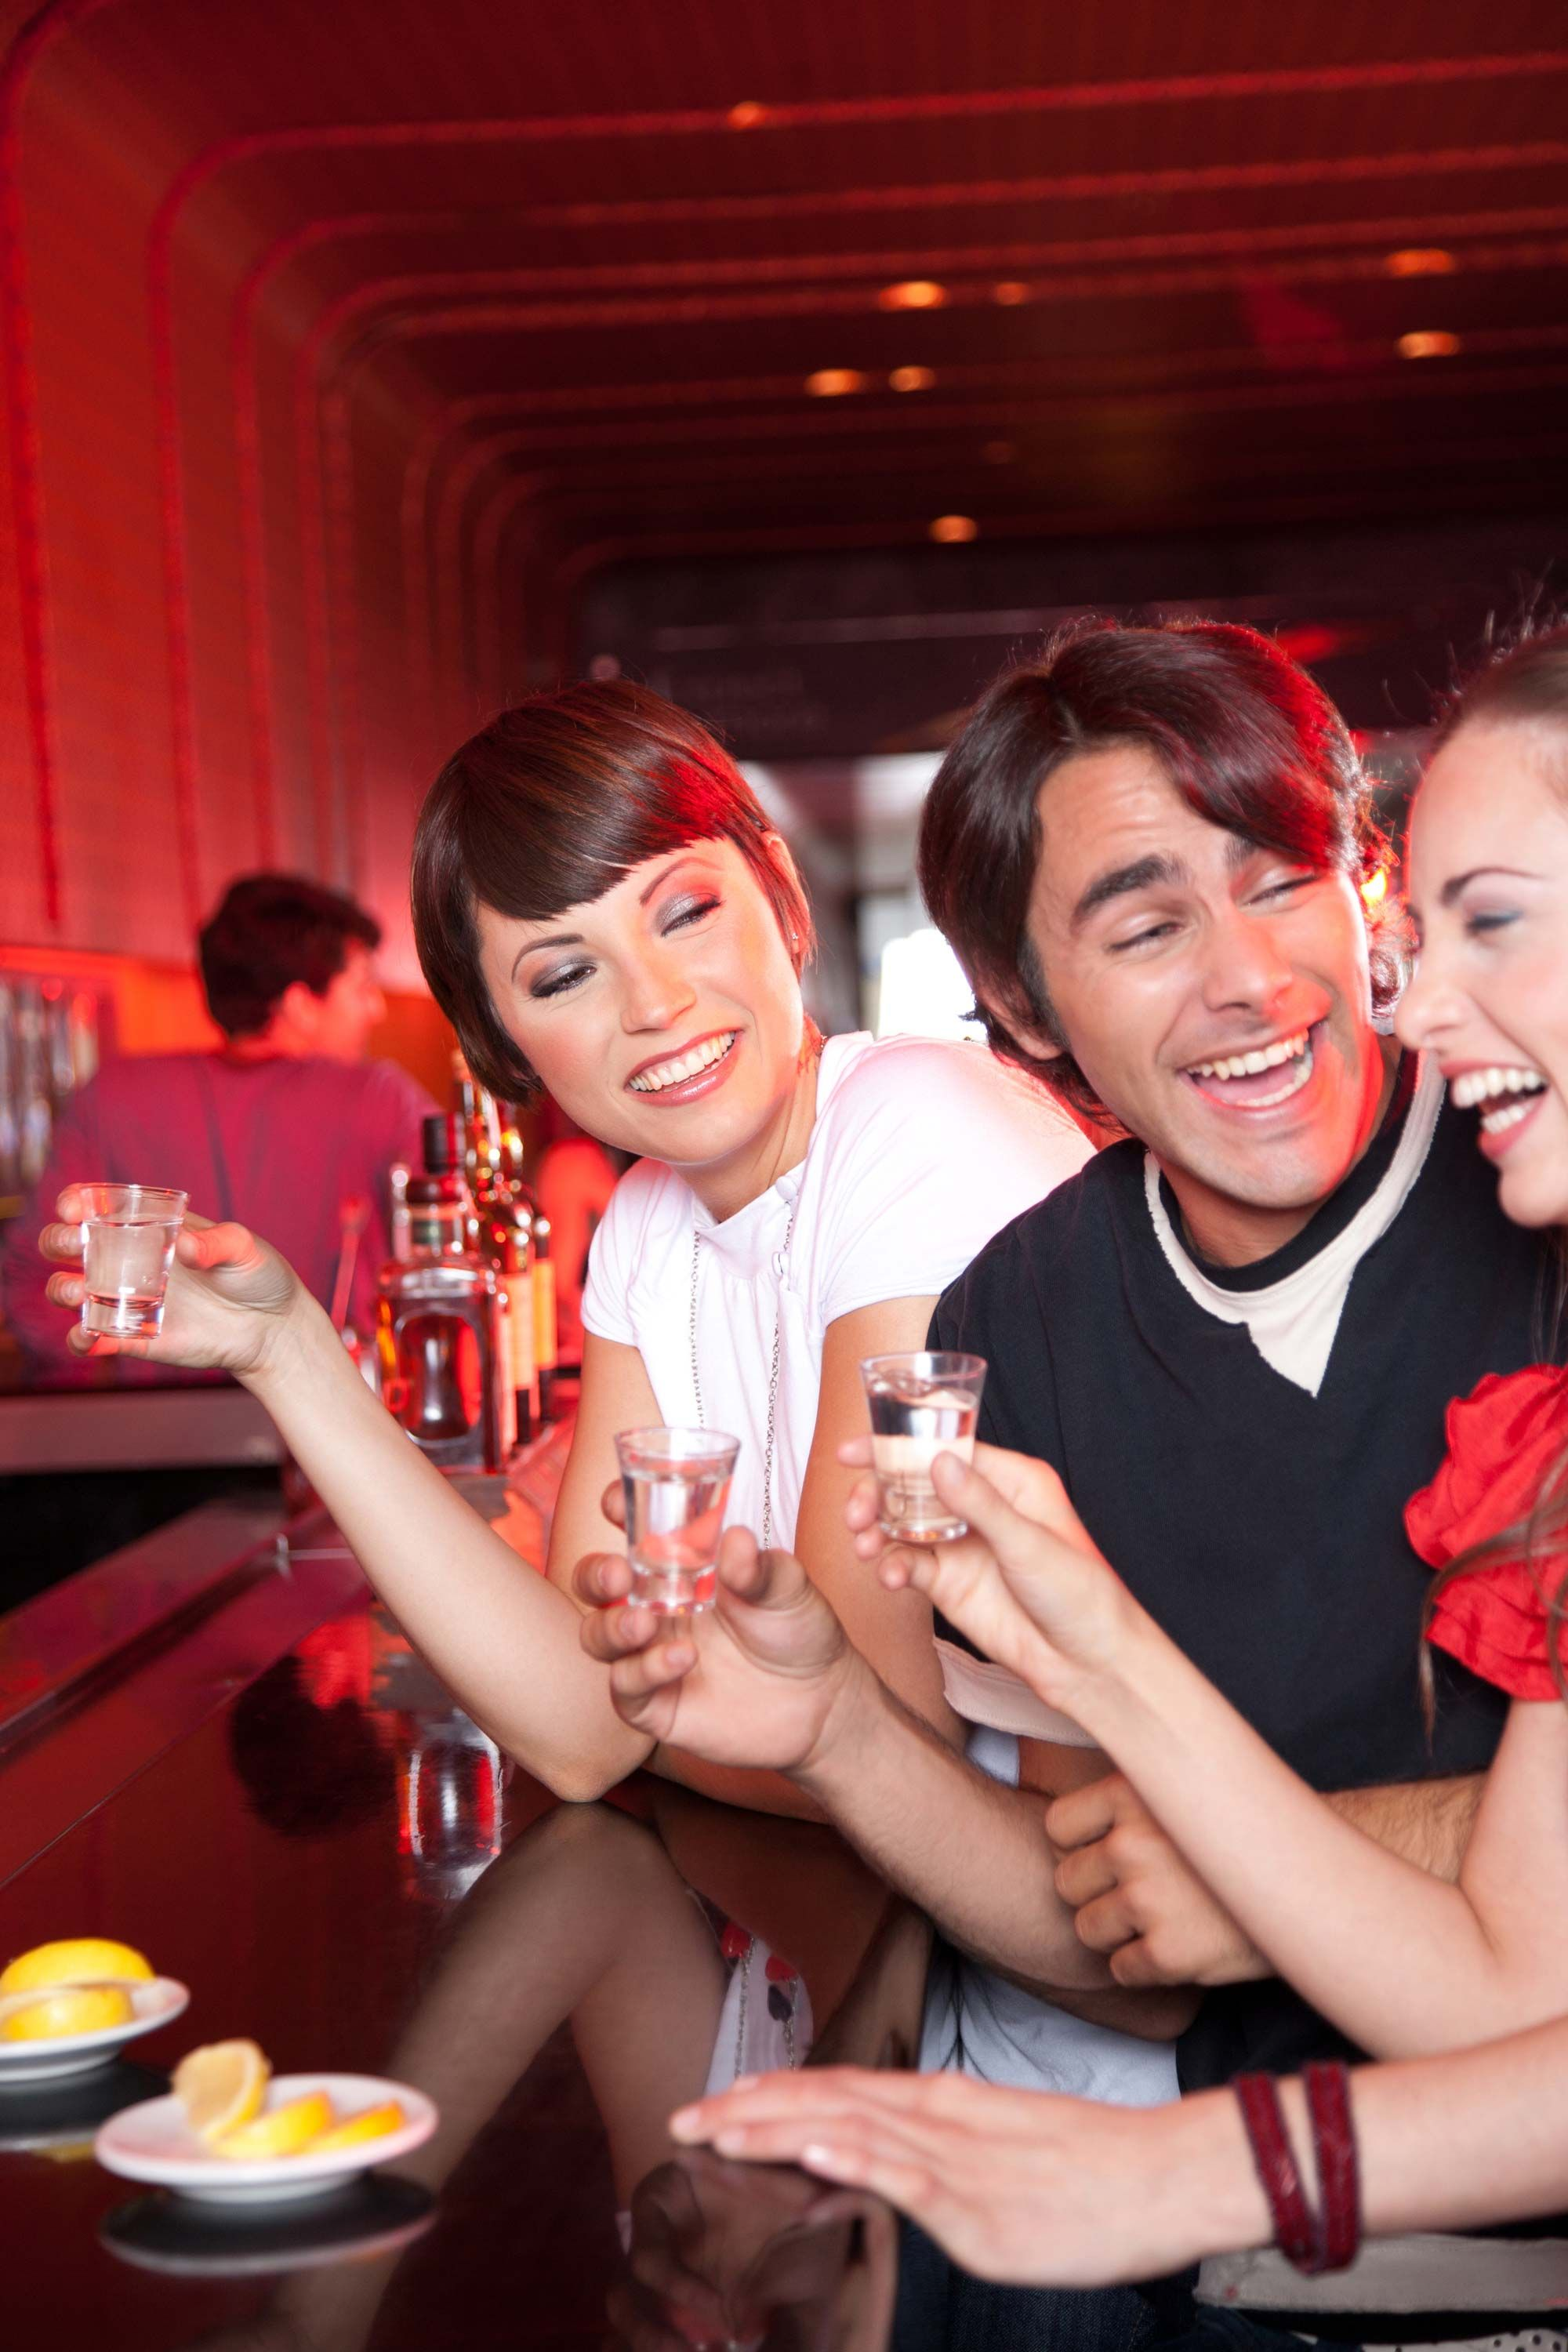 12 Bachelorette Party Games And Ideas